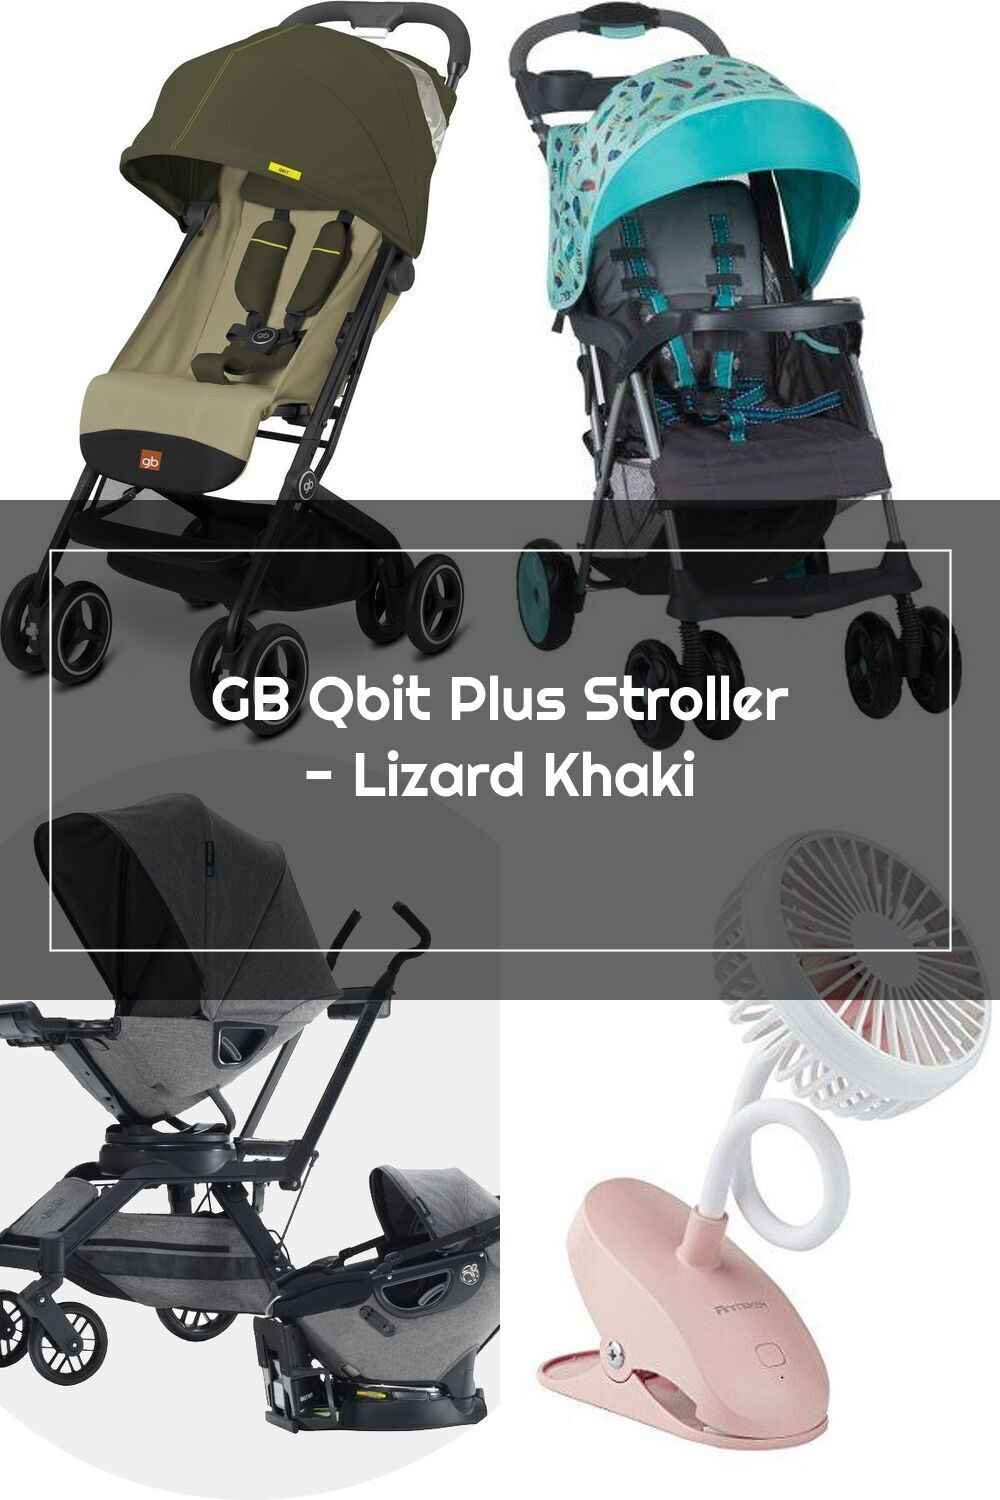 GB Qbit Plus Stroller Lizard Khaki in 2020 Baby